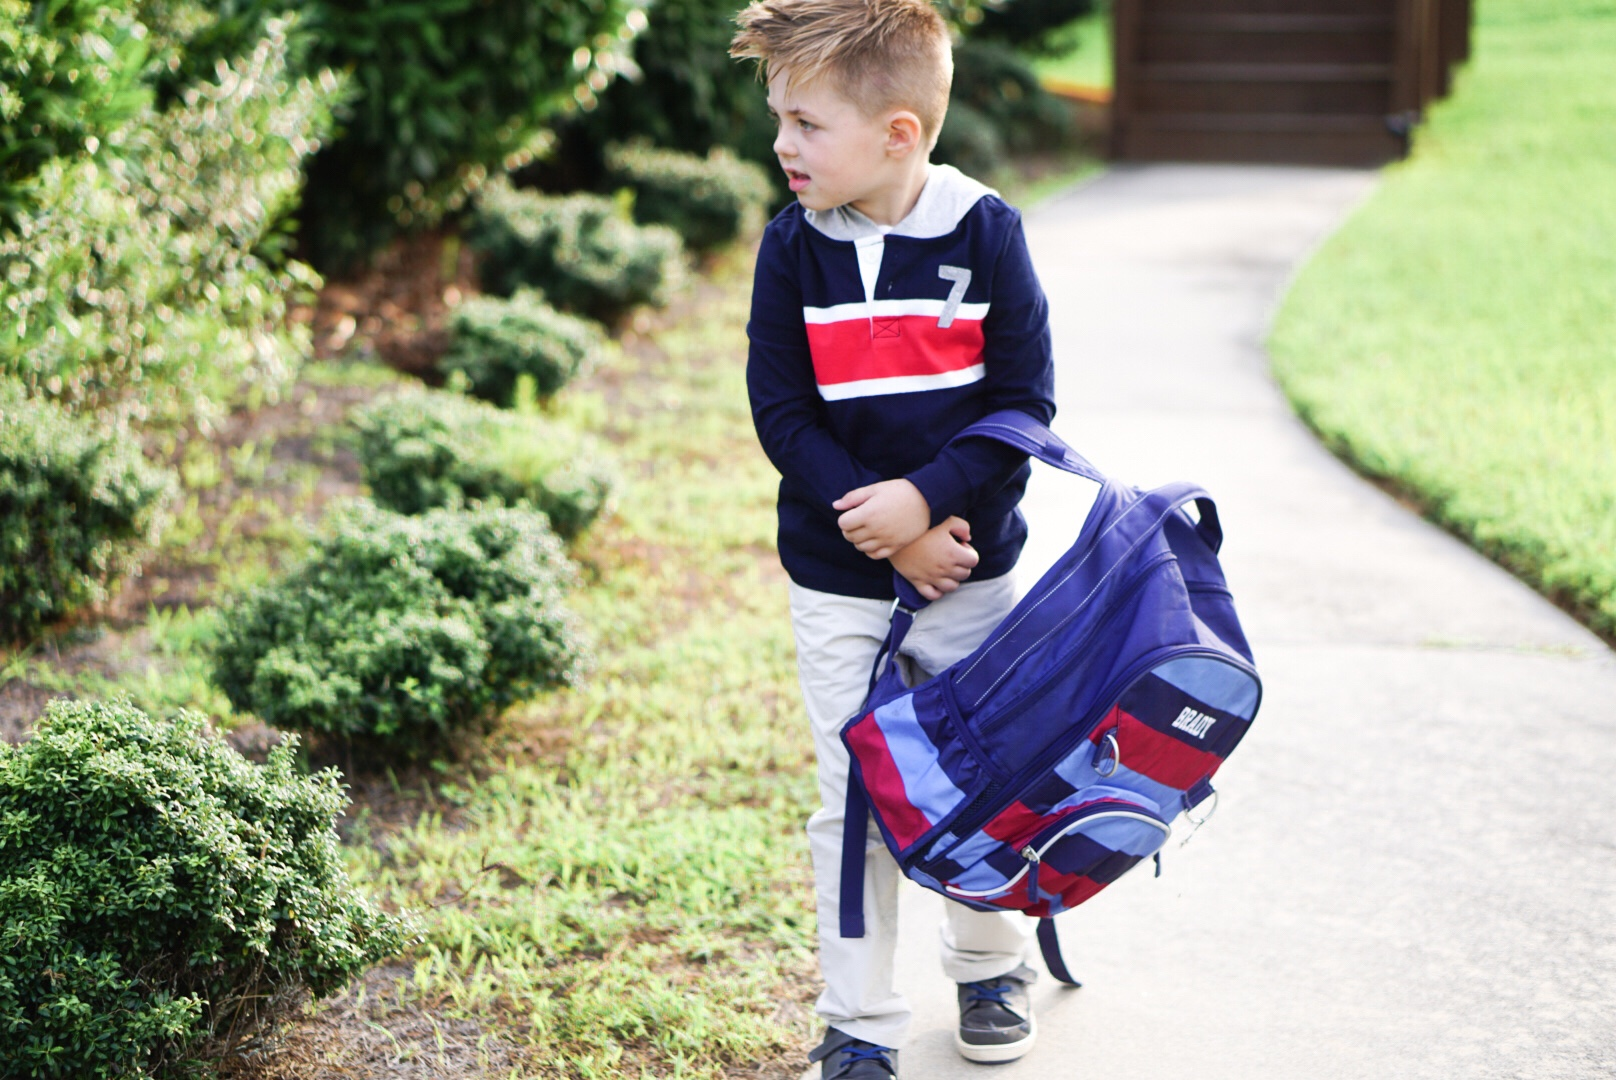 OshKosh coupon and Kids Clothing deals for Spring, Summer and Back to school